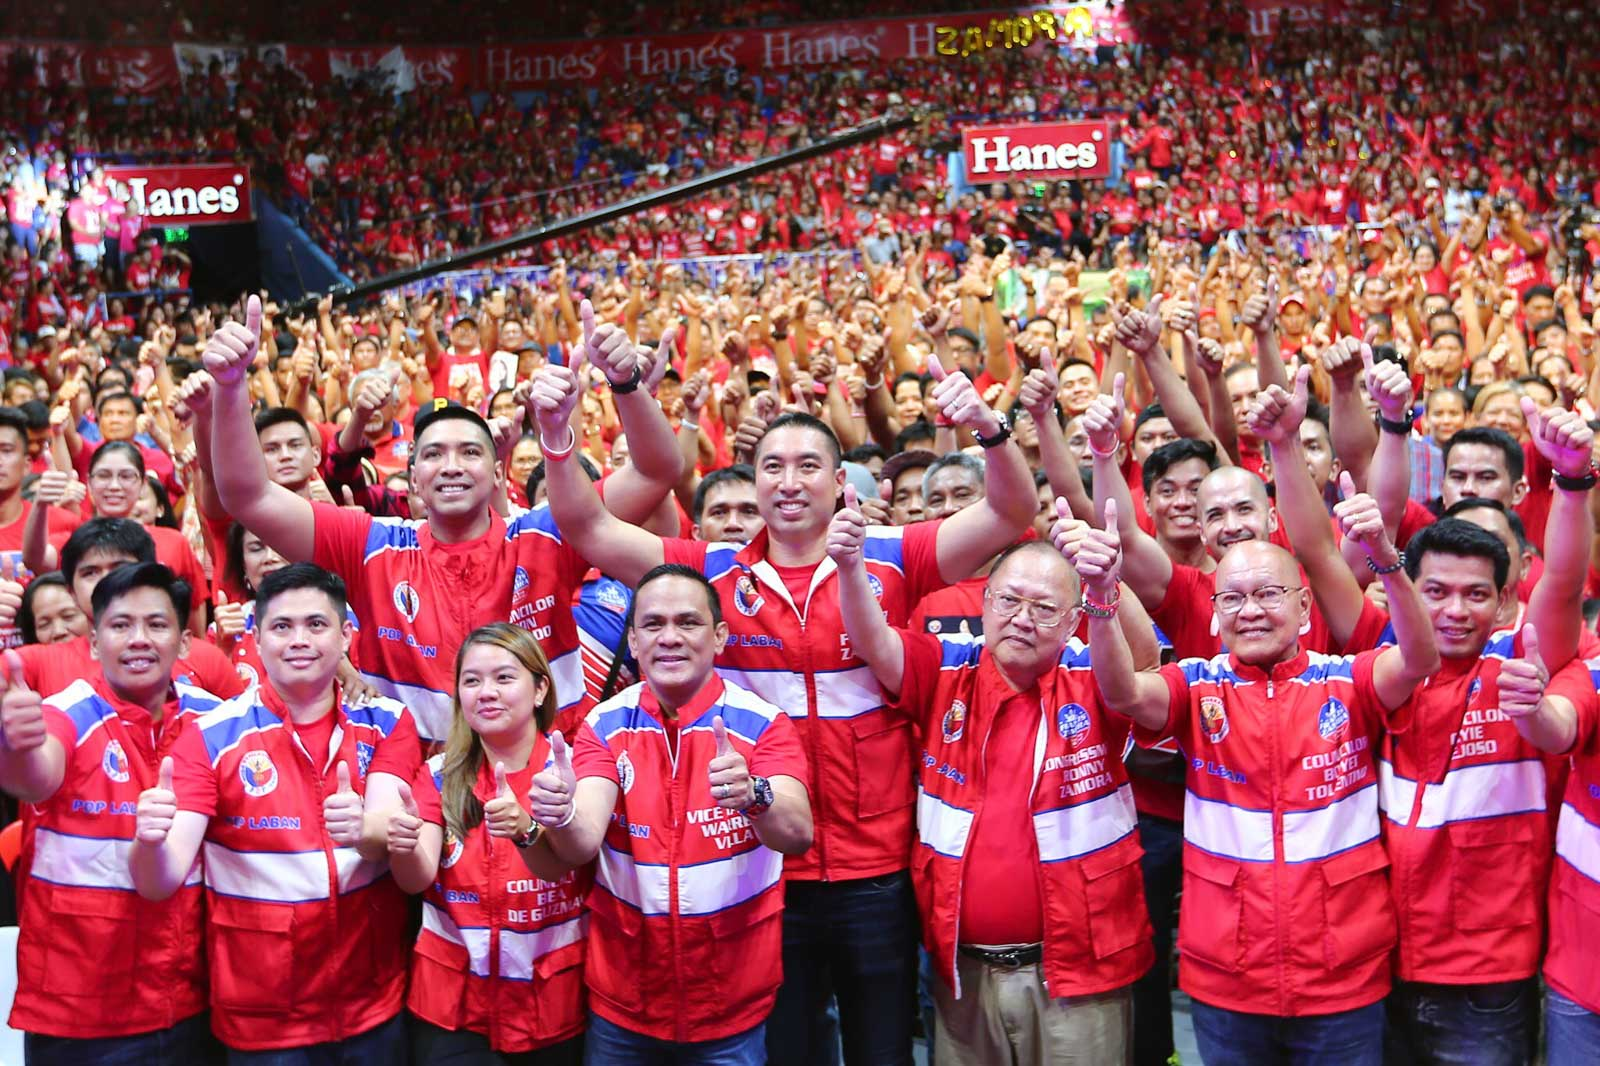 PACKED. PDP-Laban San Juan holds its miting de avance at the Filoil Flying V Center, filling it with supporters in red on May 11. Photo by Jire Carreon/Rappler